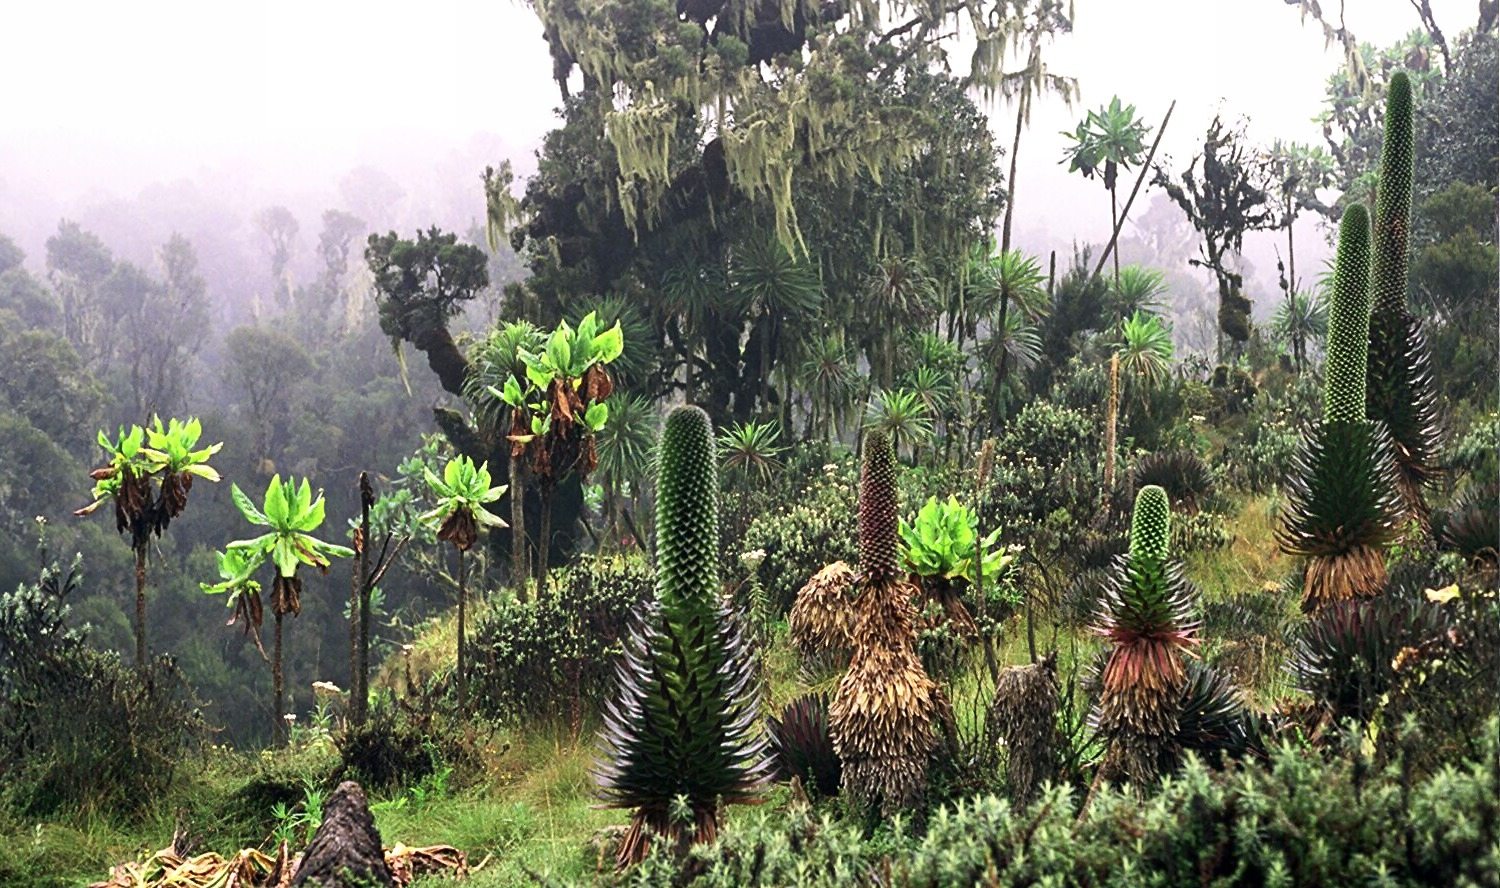 vegetation in Rwenzori uganda